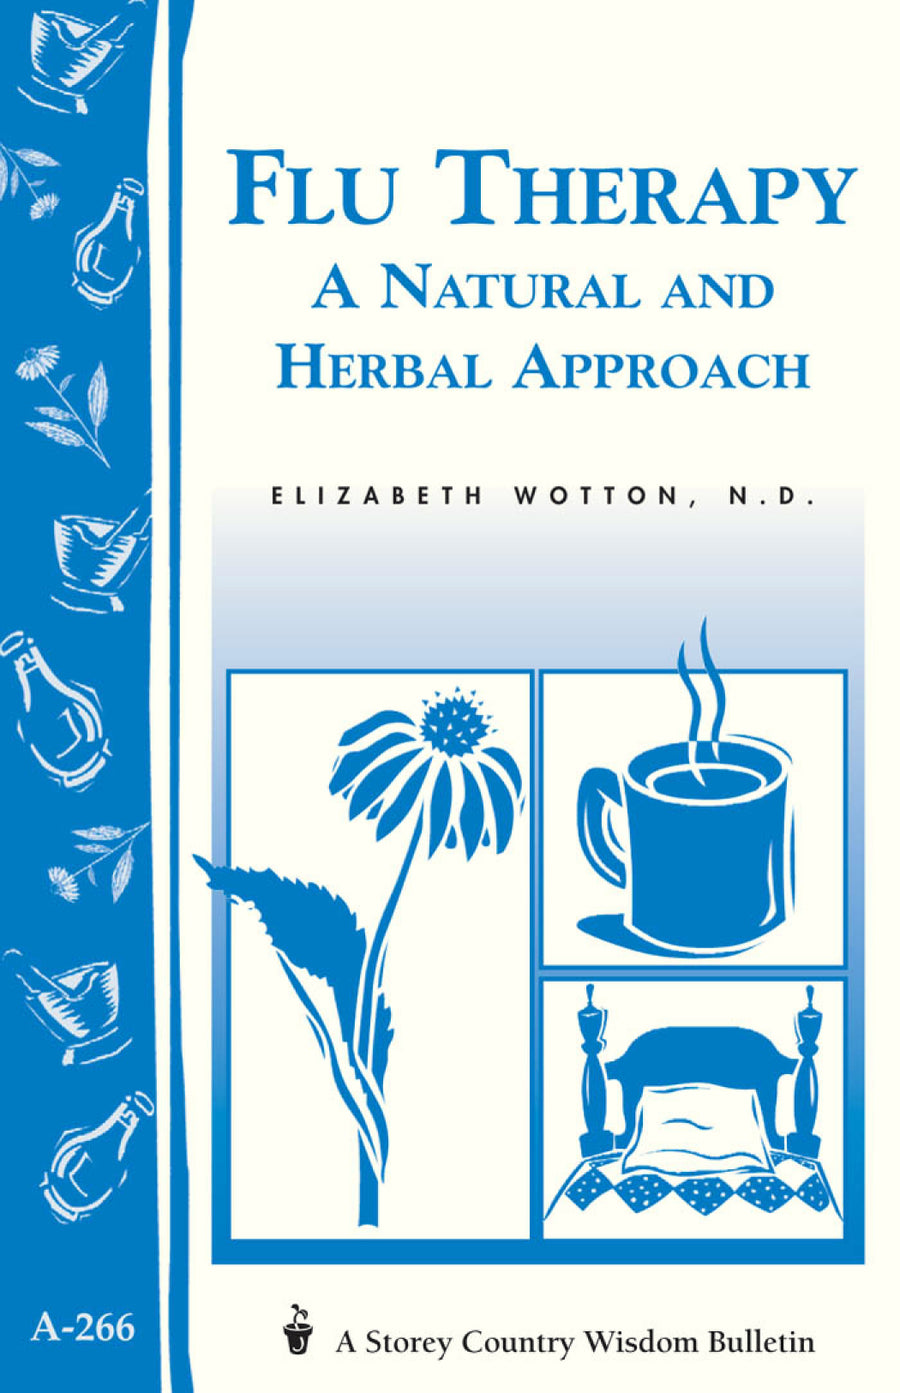 Flu Therapy: A Natural + Herbal Approach